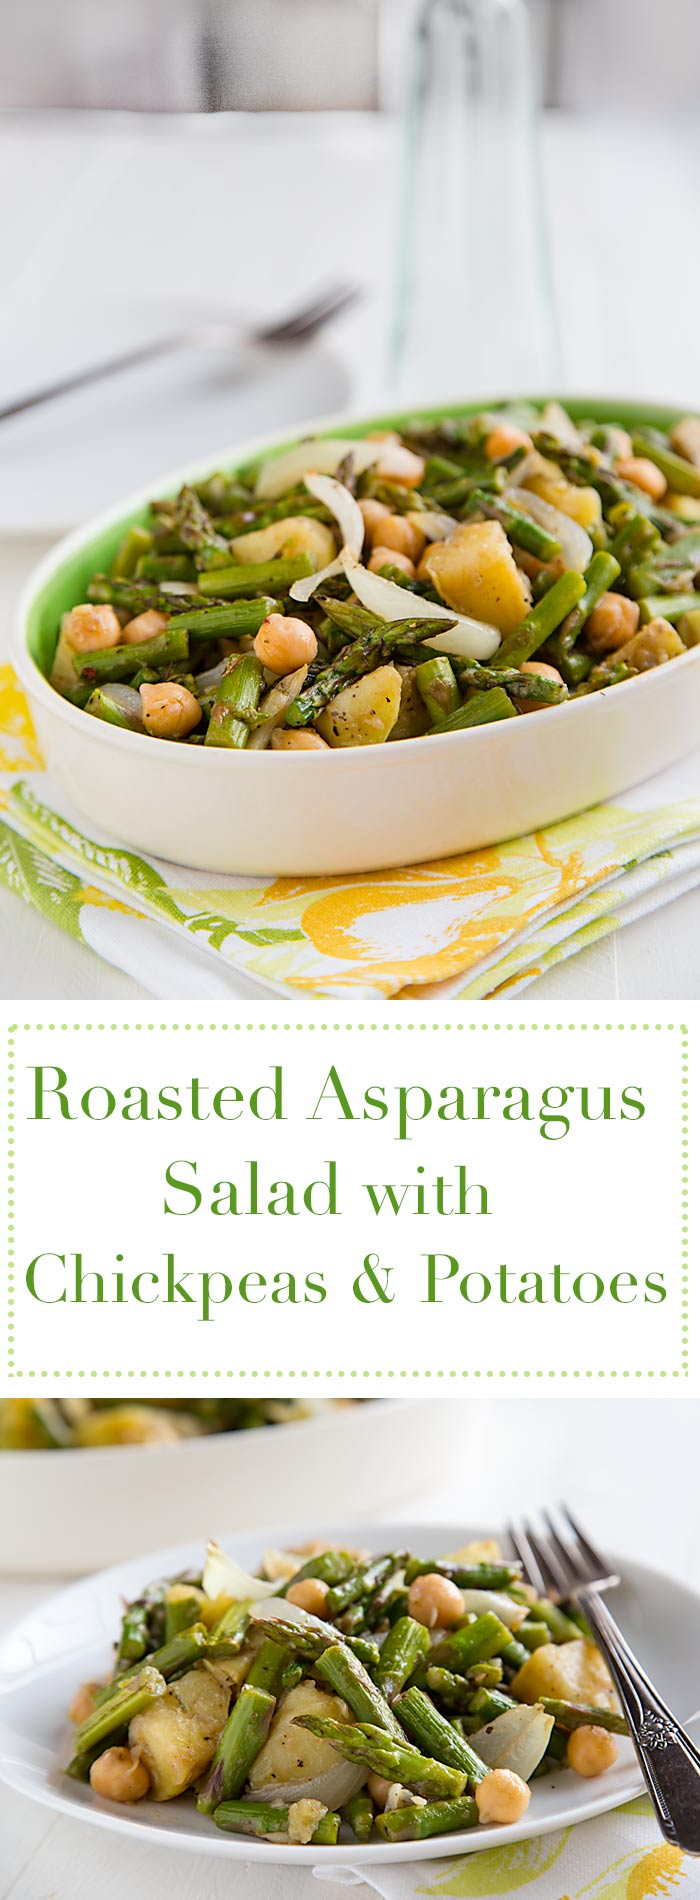 Delicious warm or cold, this hearty, vegan asparagus salad makes a great one-pot meal or side dish. Low-fat and gluten-free.